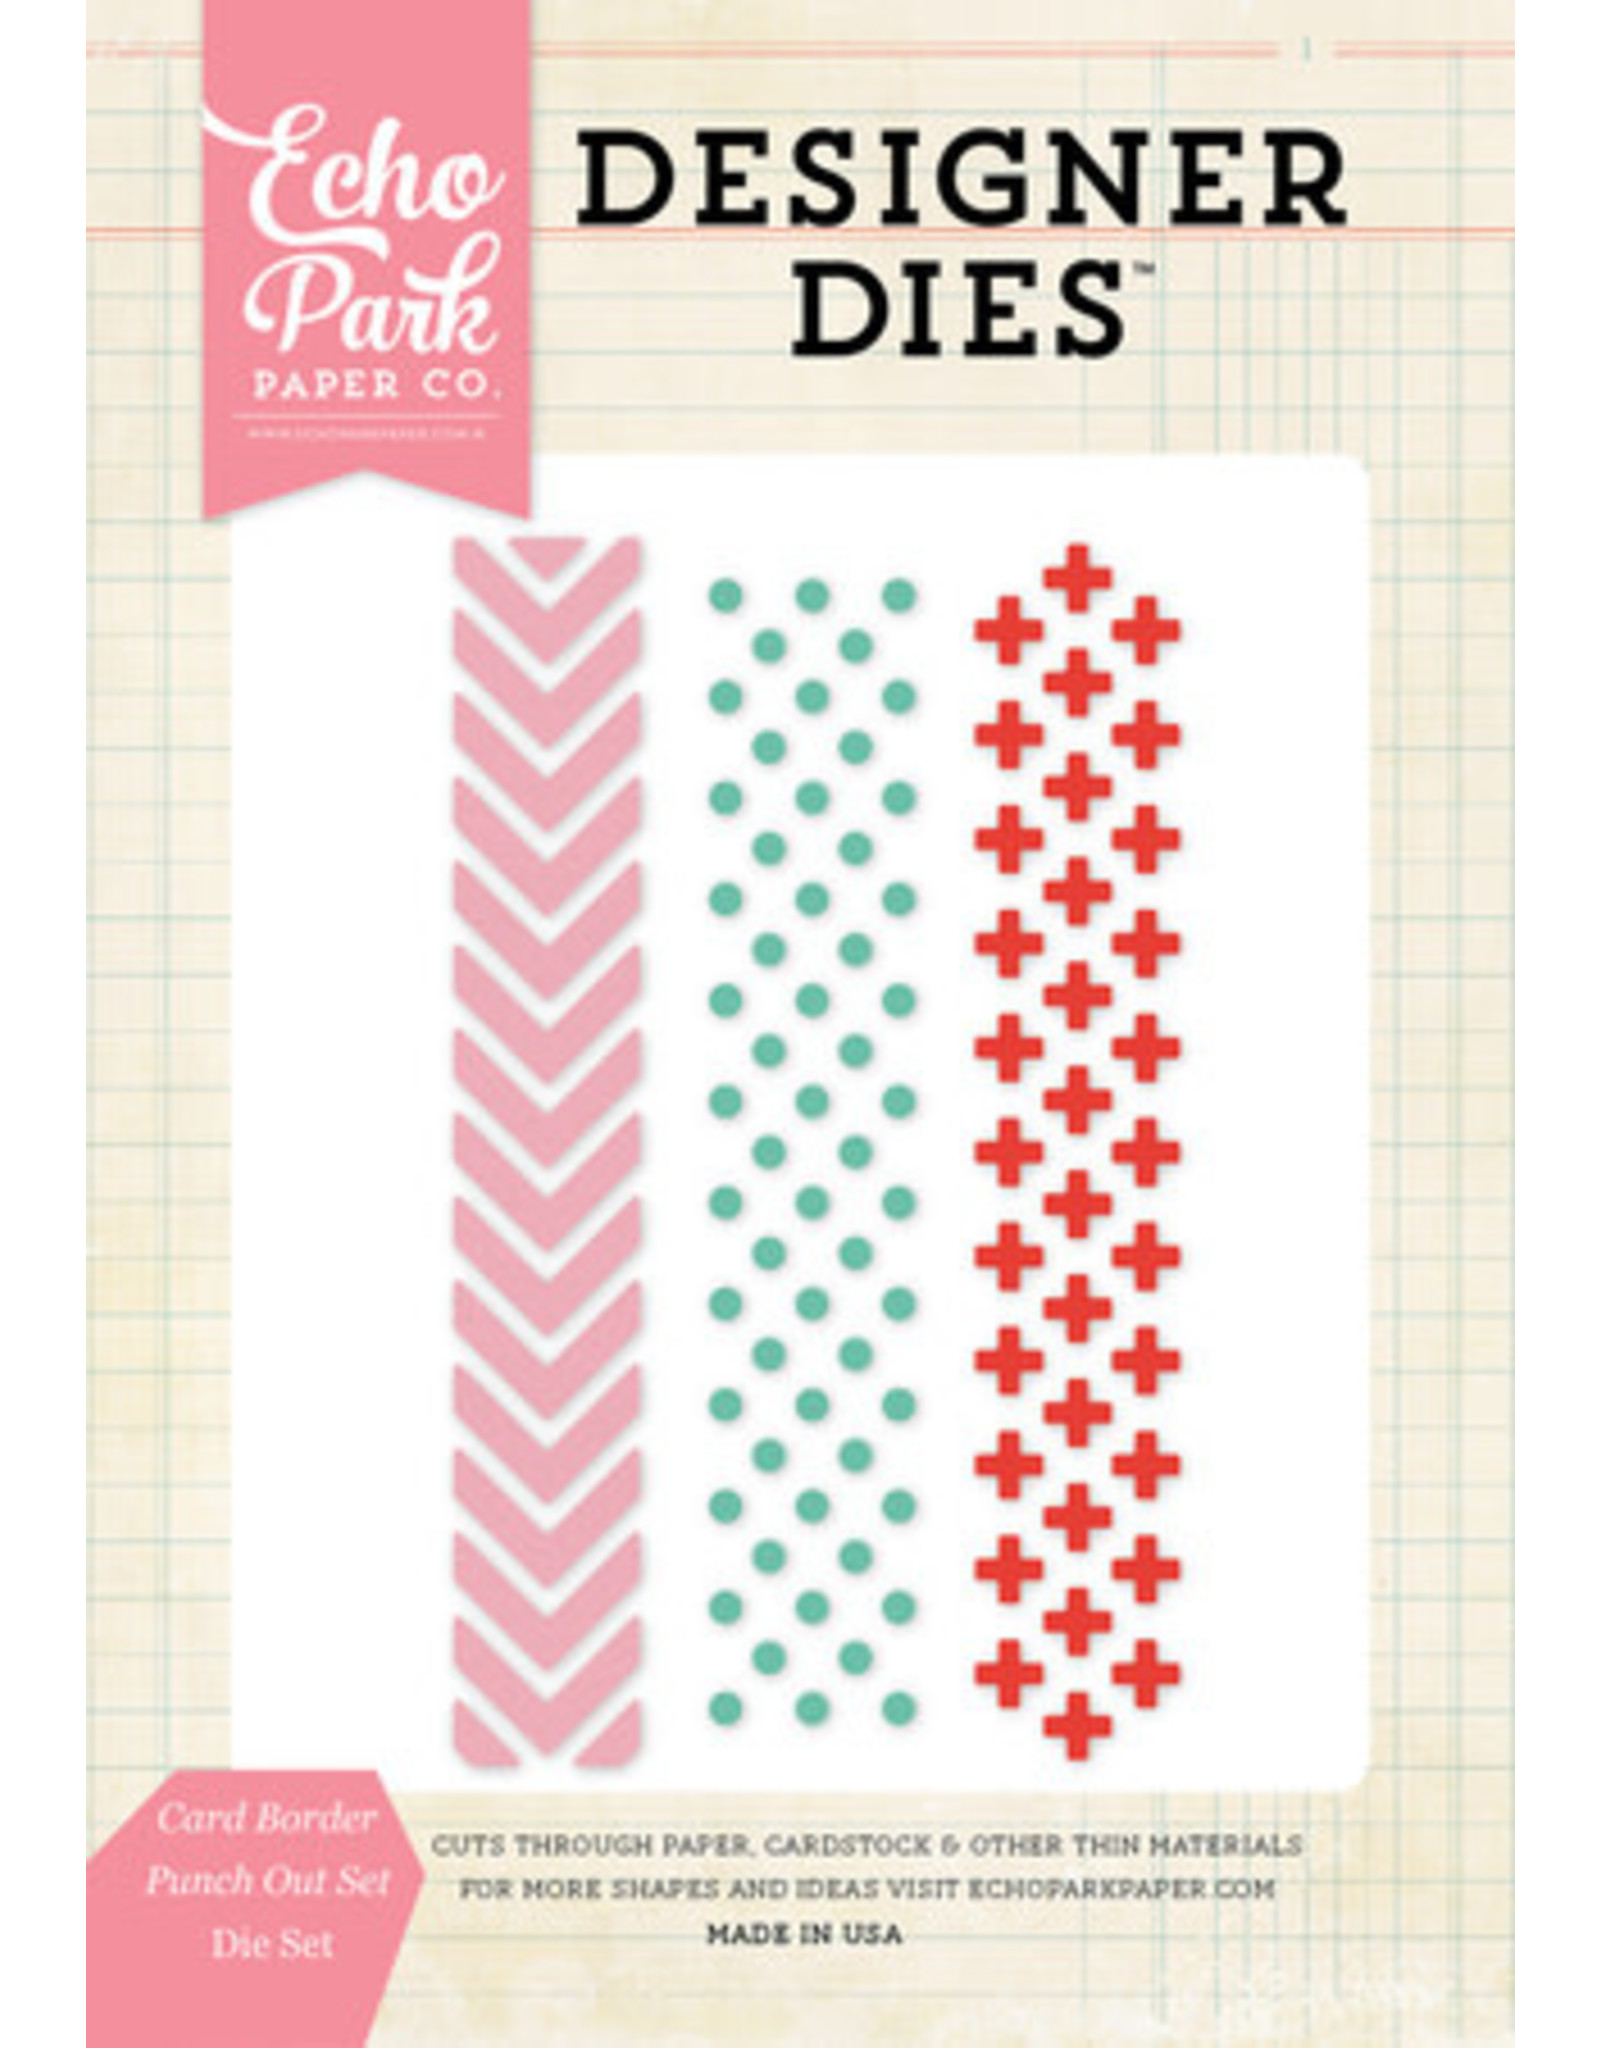 Echo Park Card Border Punch Out - Die (30%)